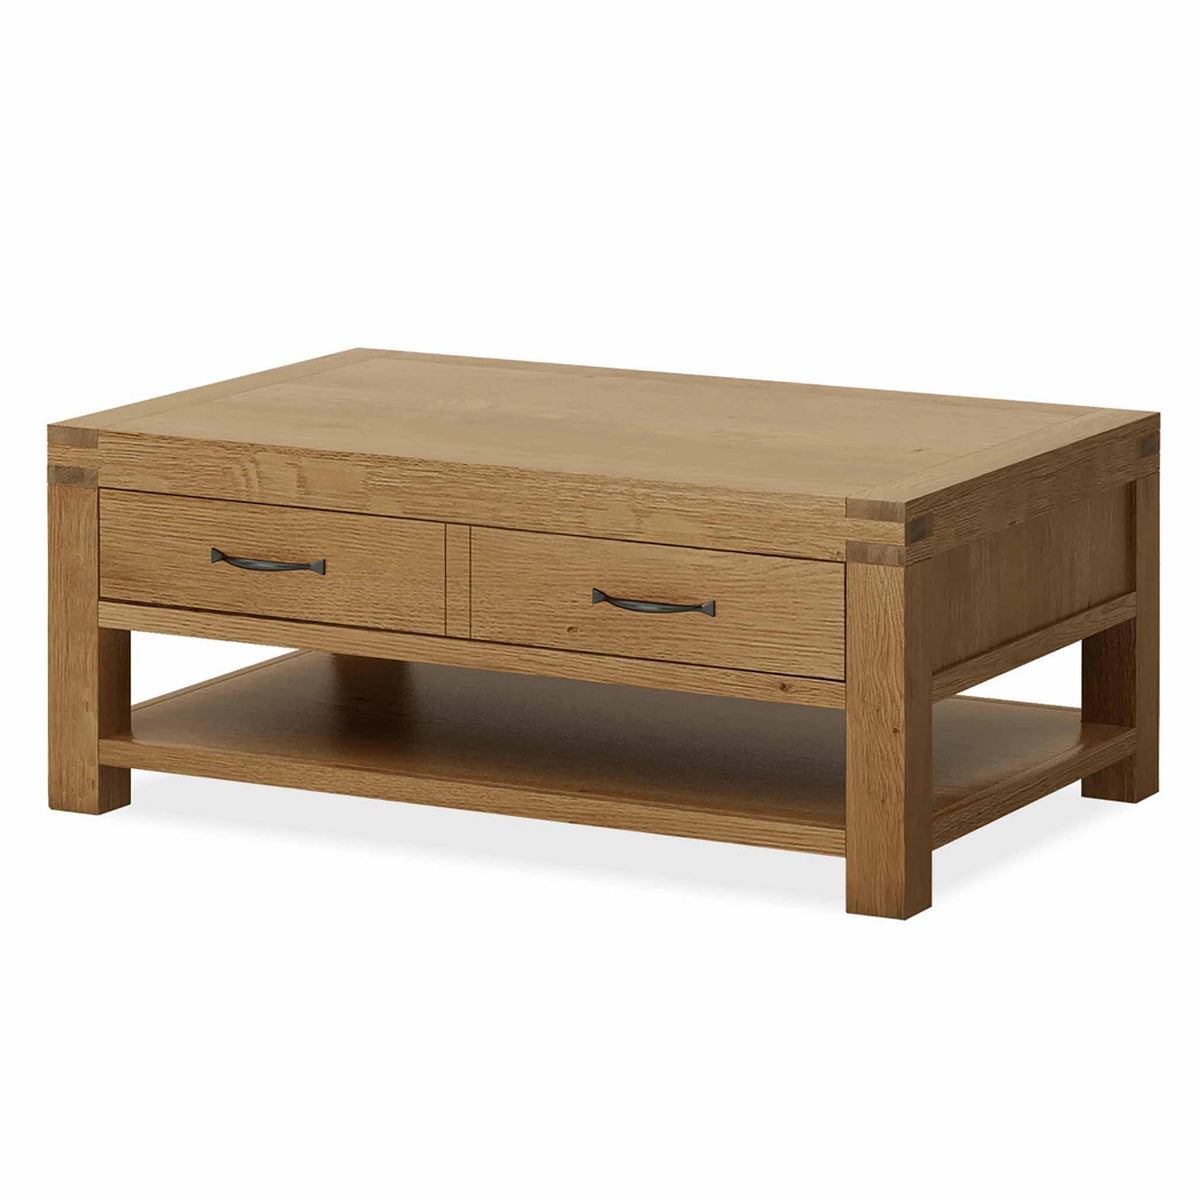 Abbey Grande Oak Coffee Table with Storage Drawer